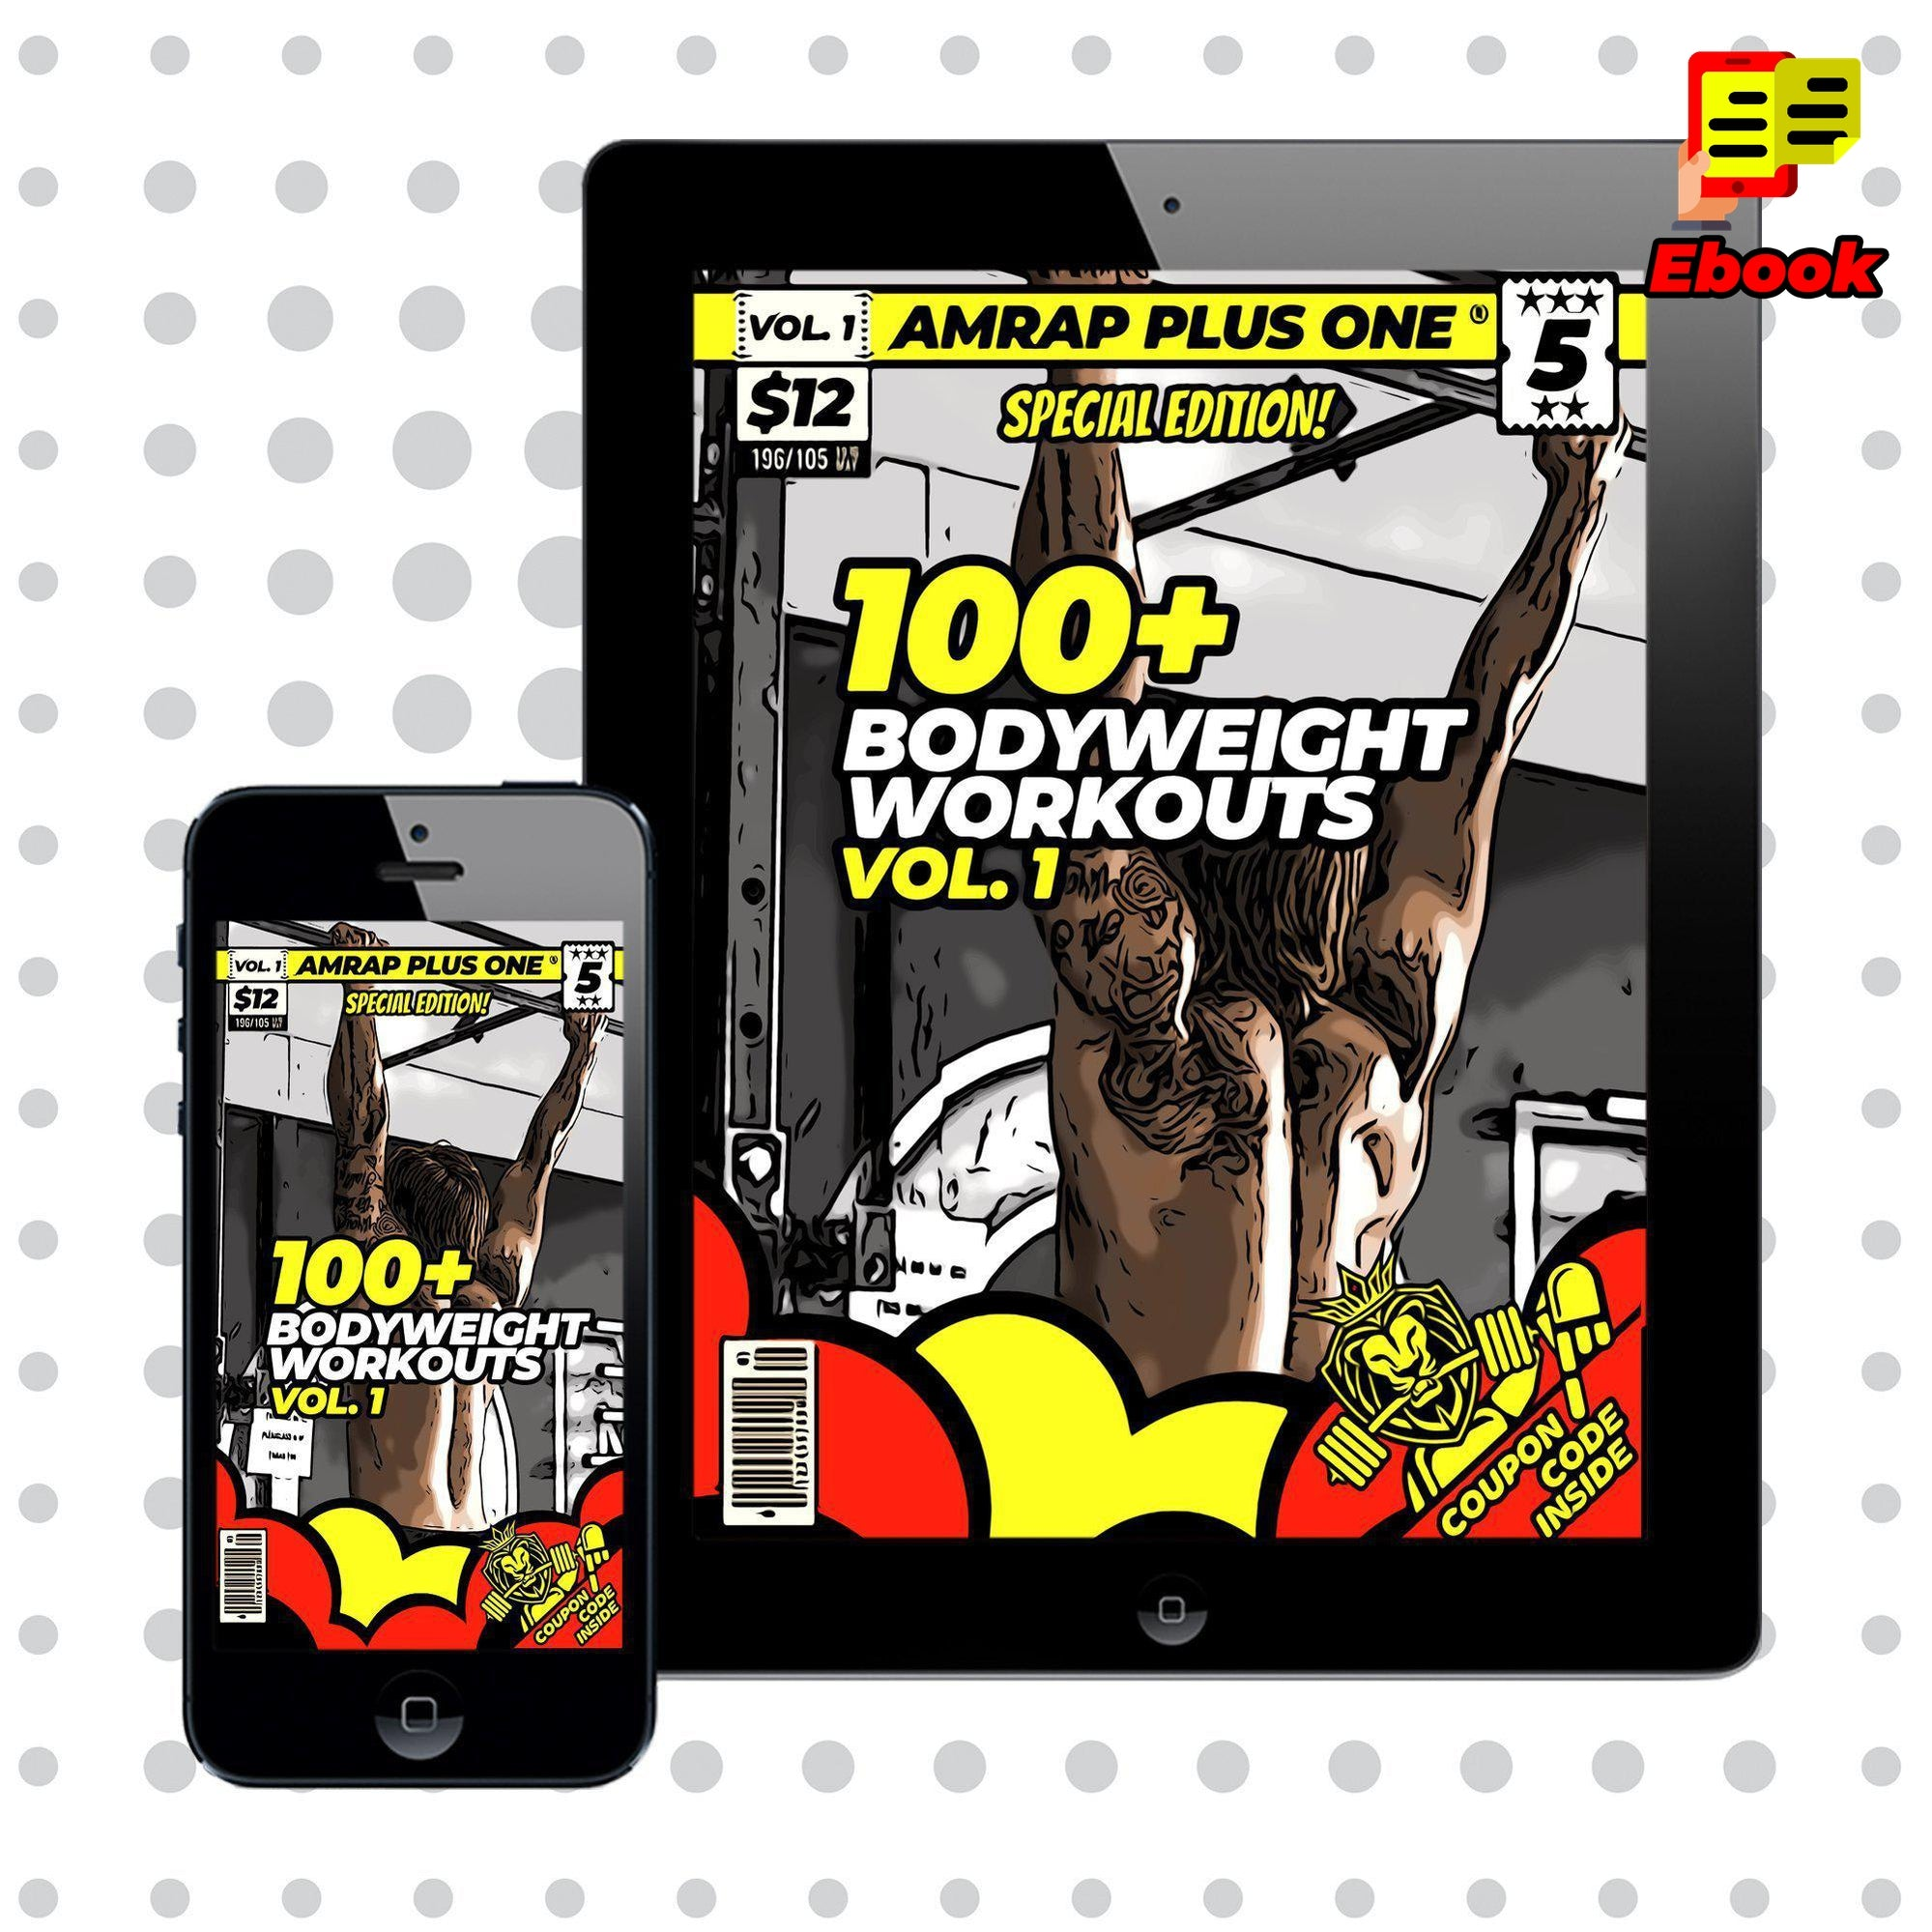 100+ Bodyweight Workouts Vol. 1 - AMRAP Plus One